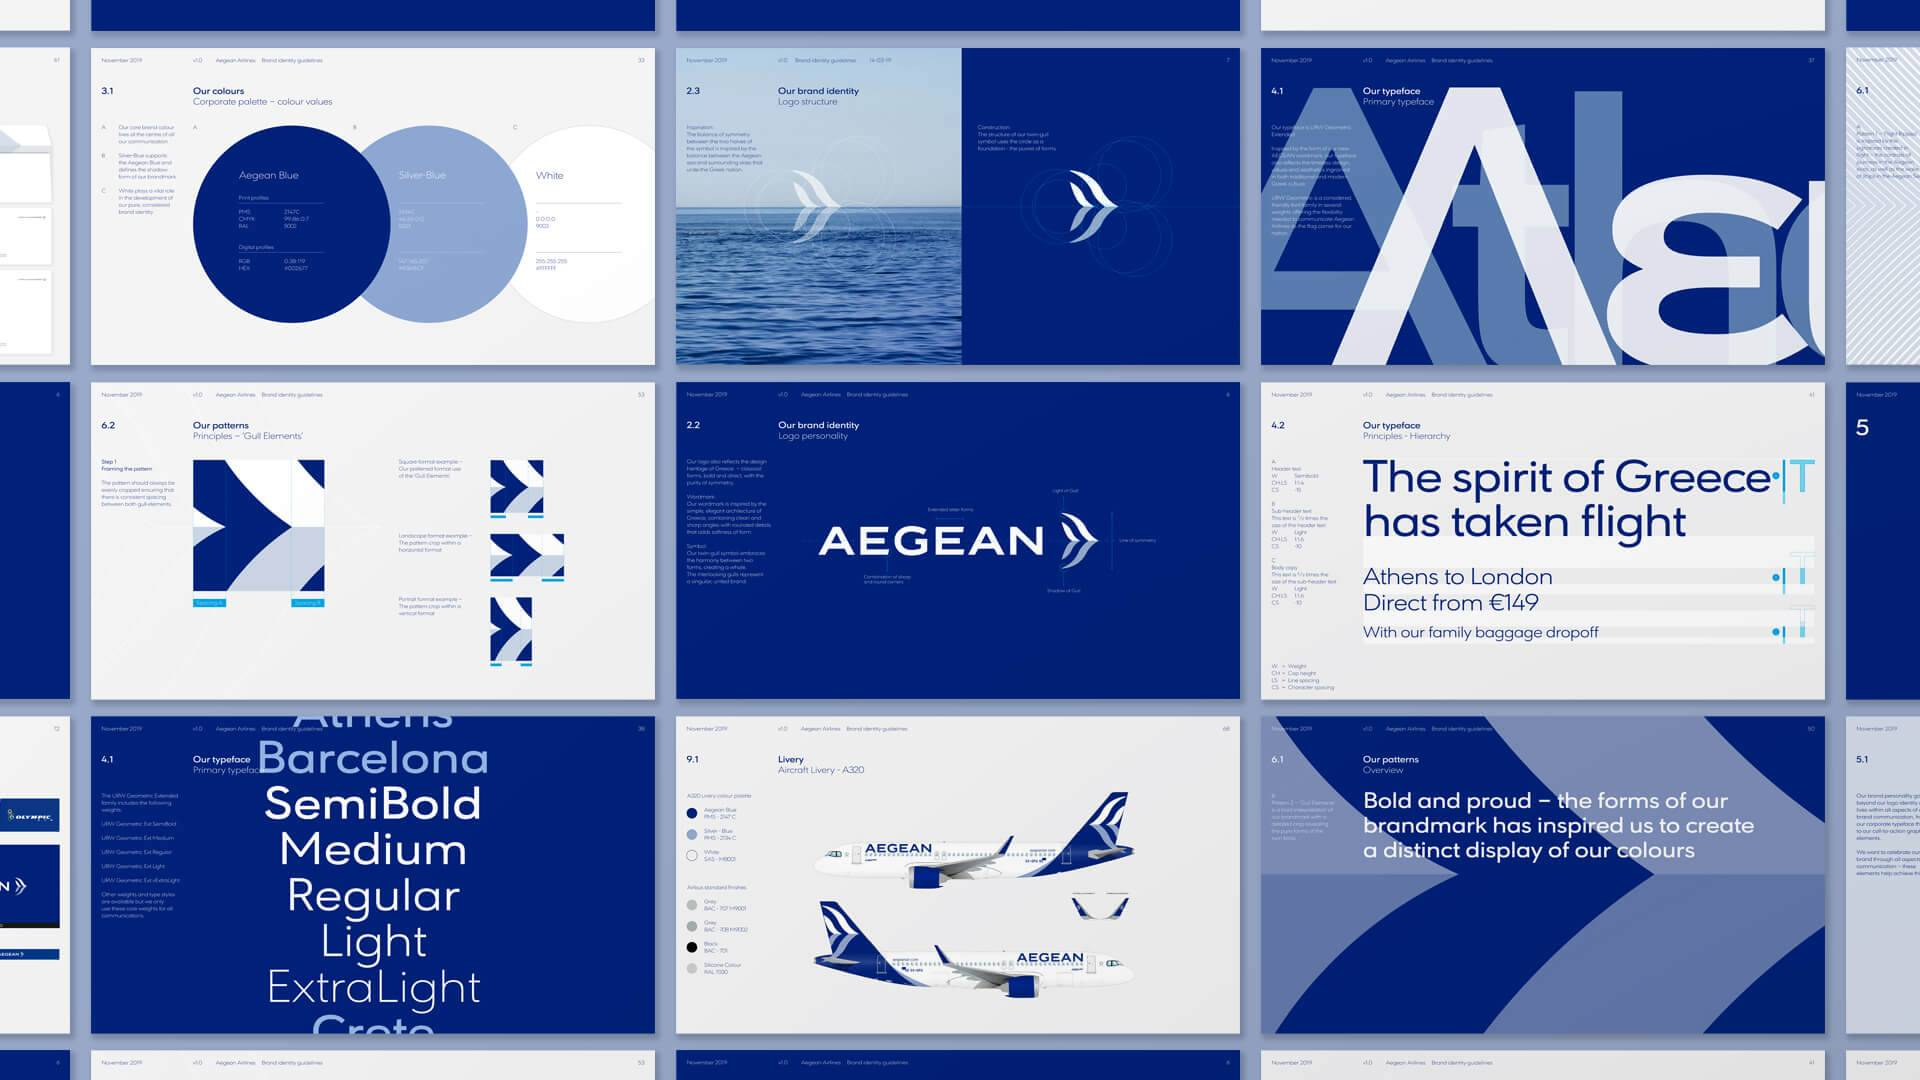 Selection of graphics, logos and fonts showing the new Aegean Airlines brand